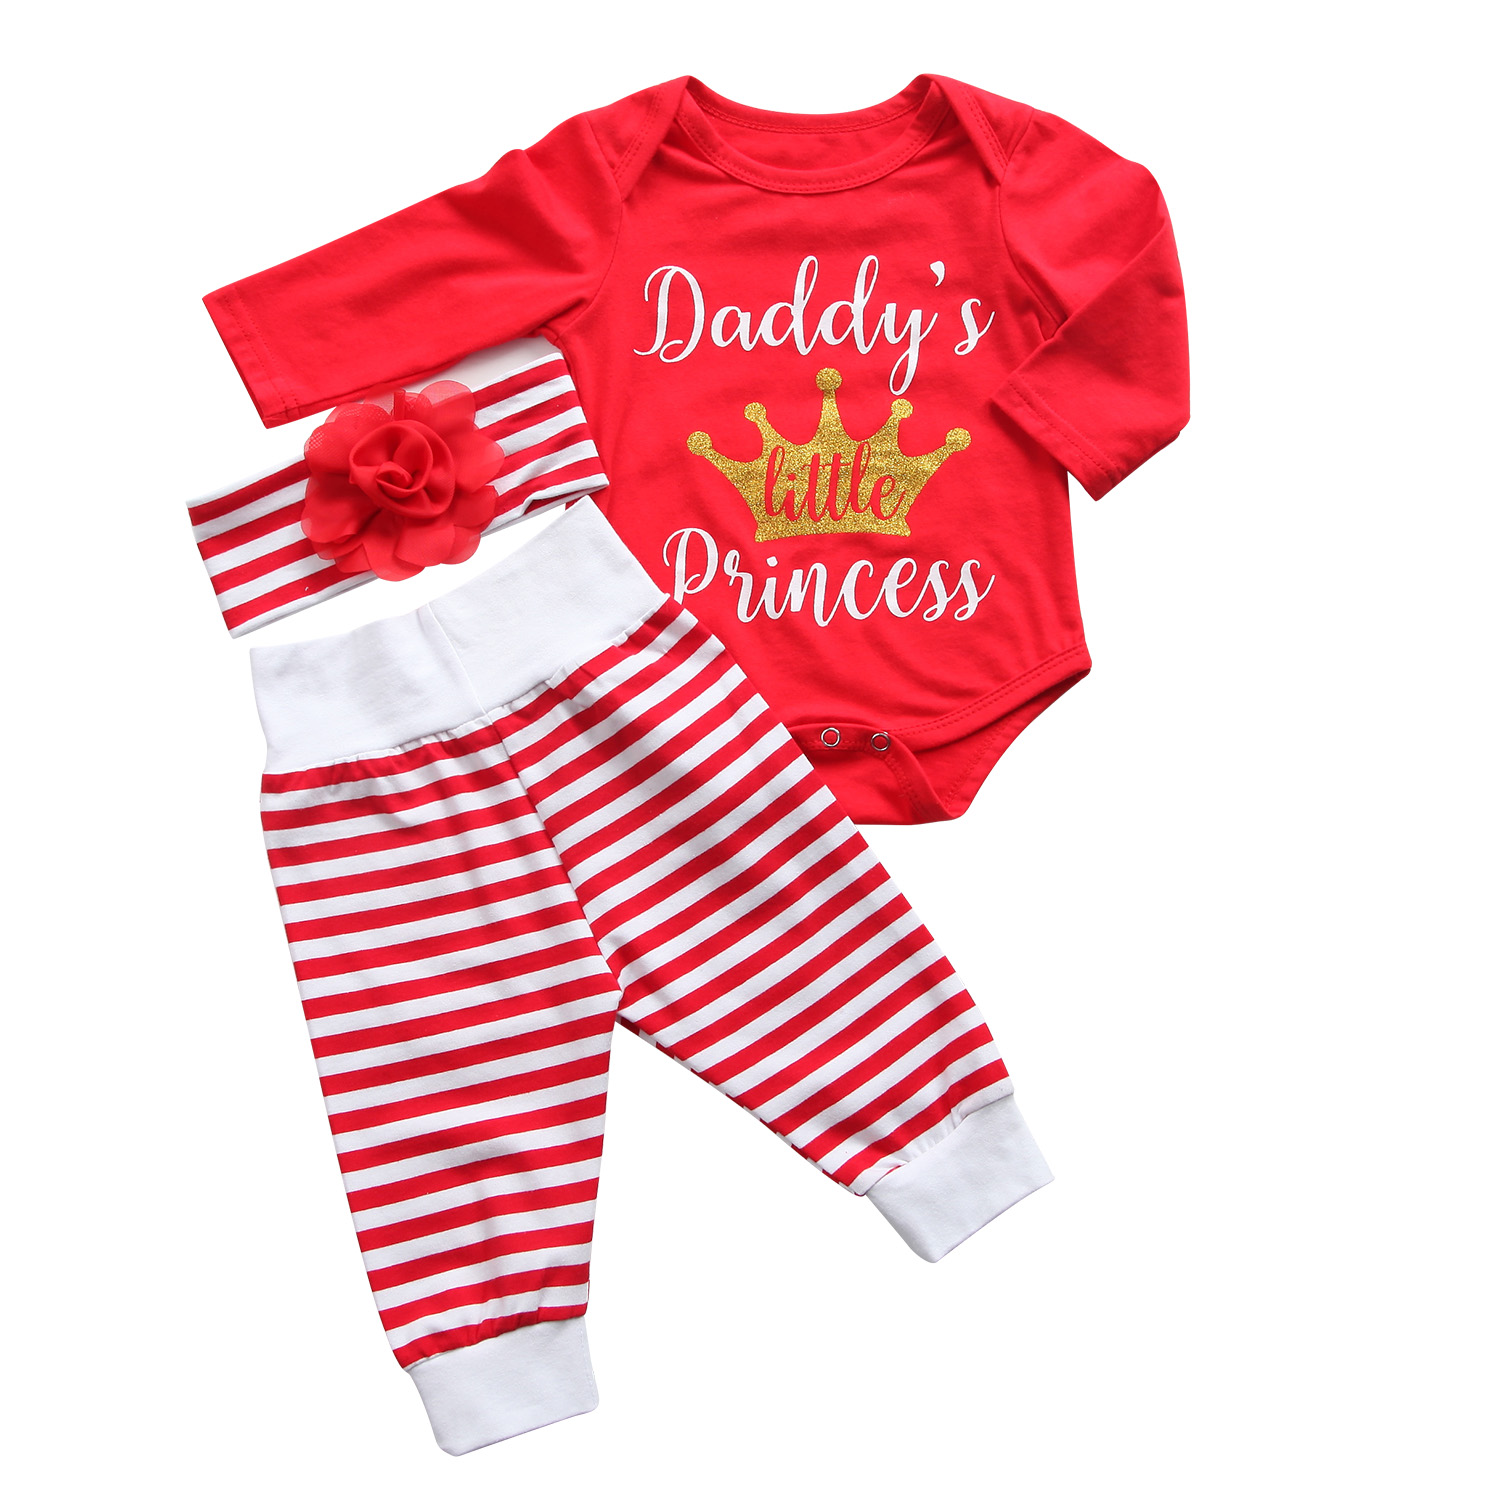 3Ps Newborn Infant Baby Girl Clothes Sets Tops Playsuit Jumpsuit Romper Long Sleeve Pants Outfit Cotton Cute Clothing infant baby boy girl 2pcs clothes set kids short sleeve you serious clark letters romper tops car print pants 2pcs outfit set